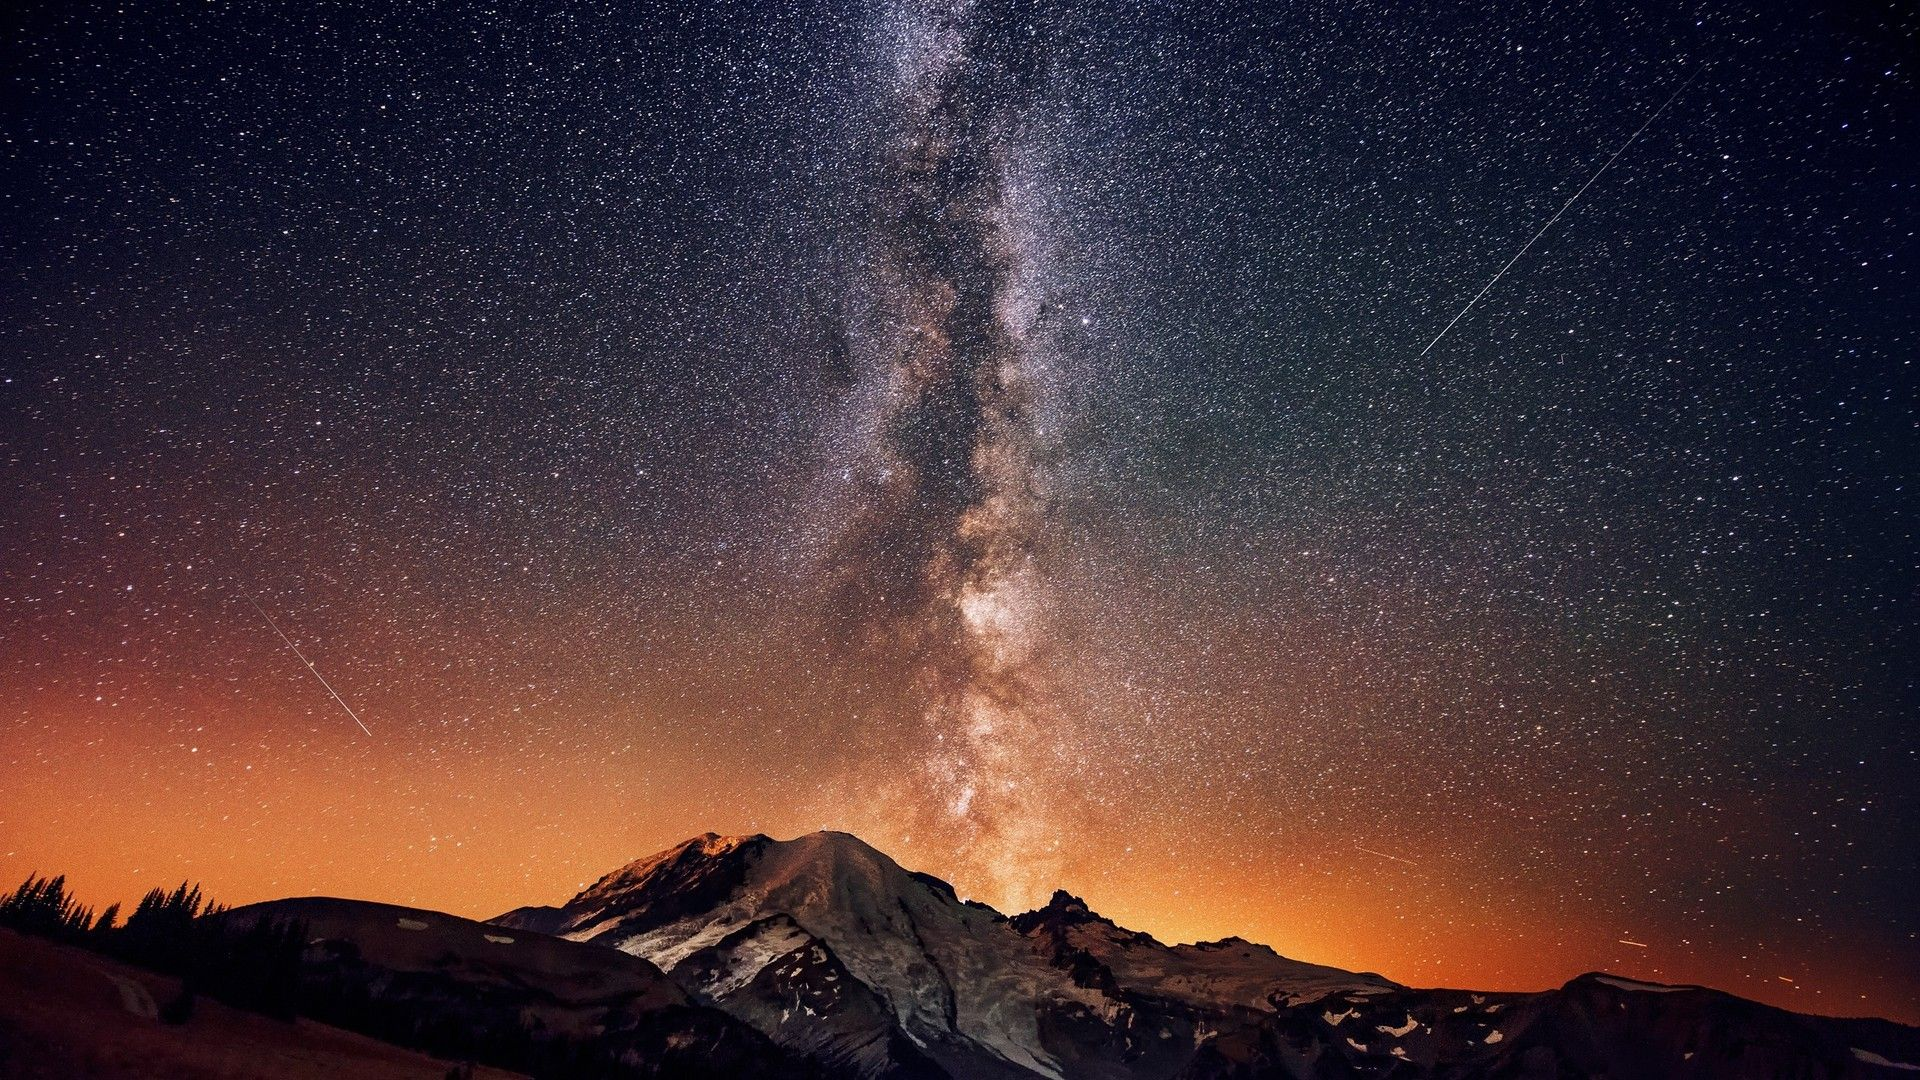 Milky Way Hd Wallpapers Top Free Milky Way Hd Backgrounds